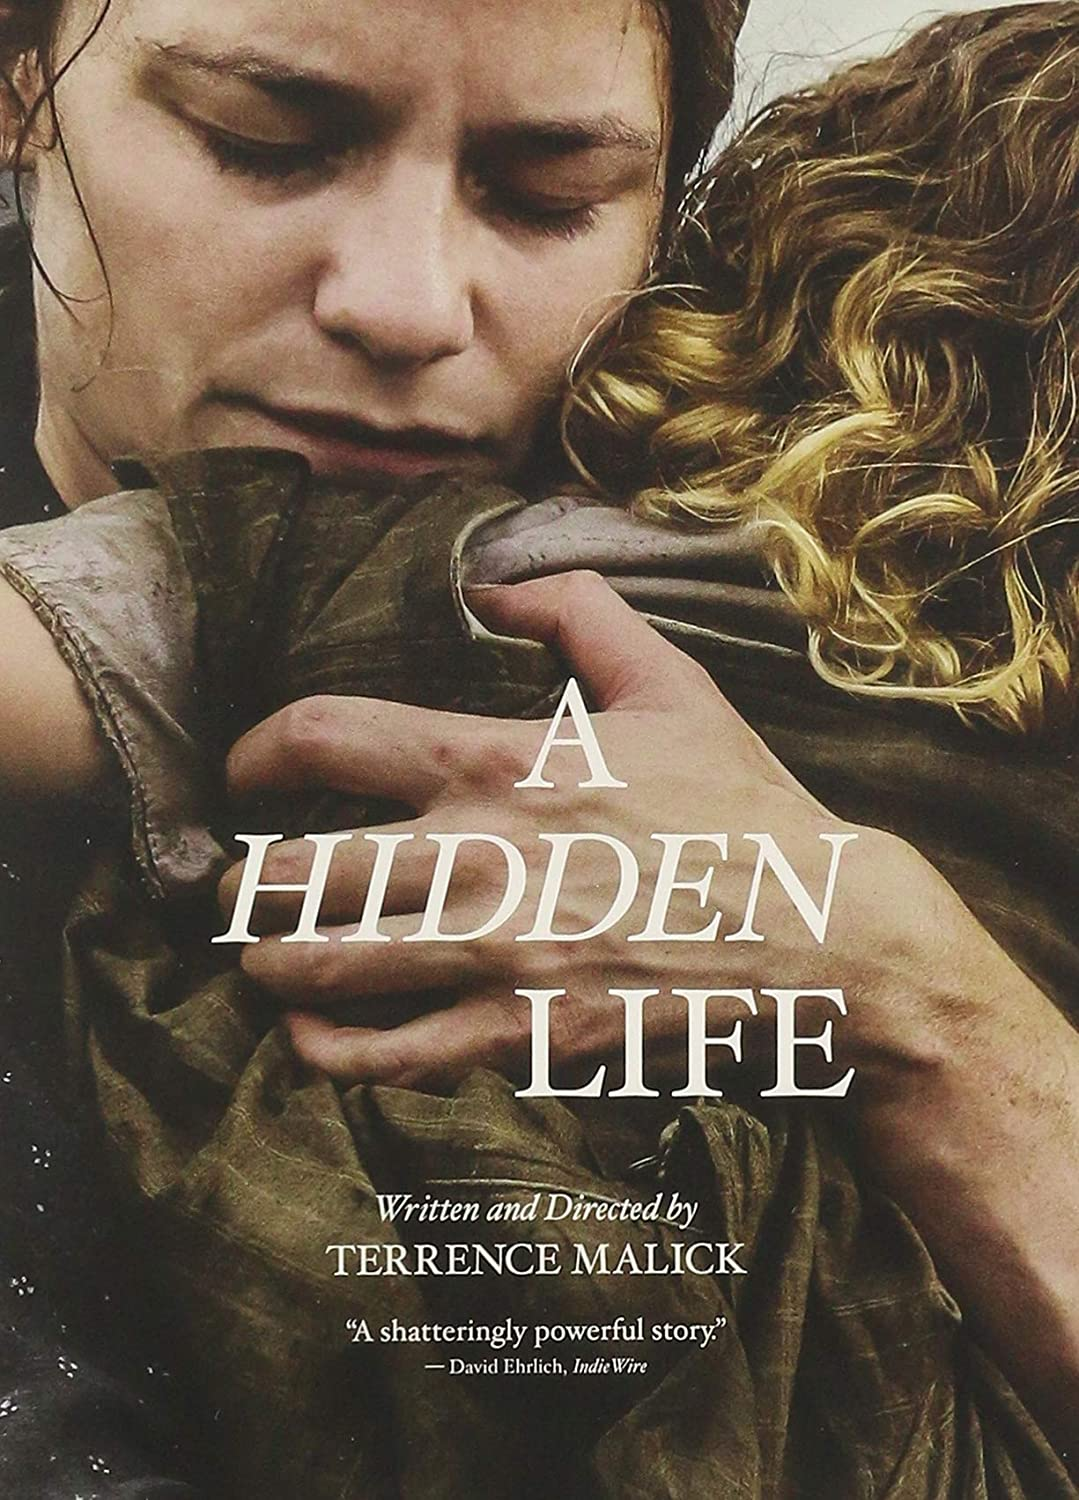 Cover Art for A Hidden Life